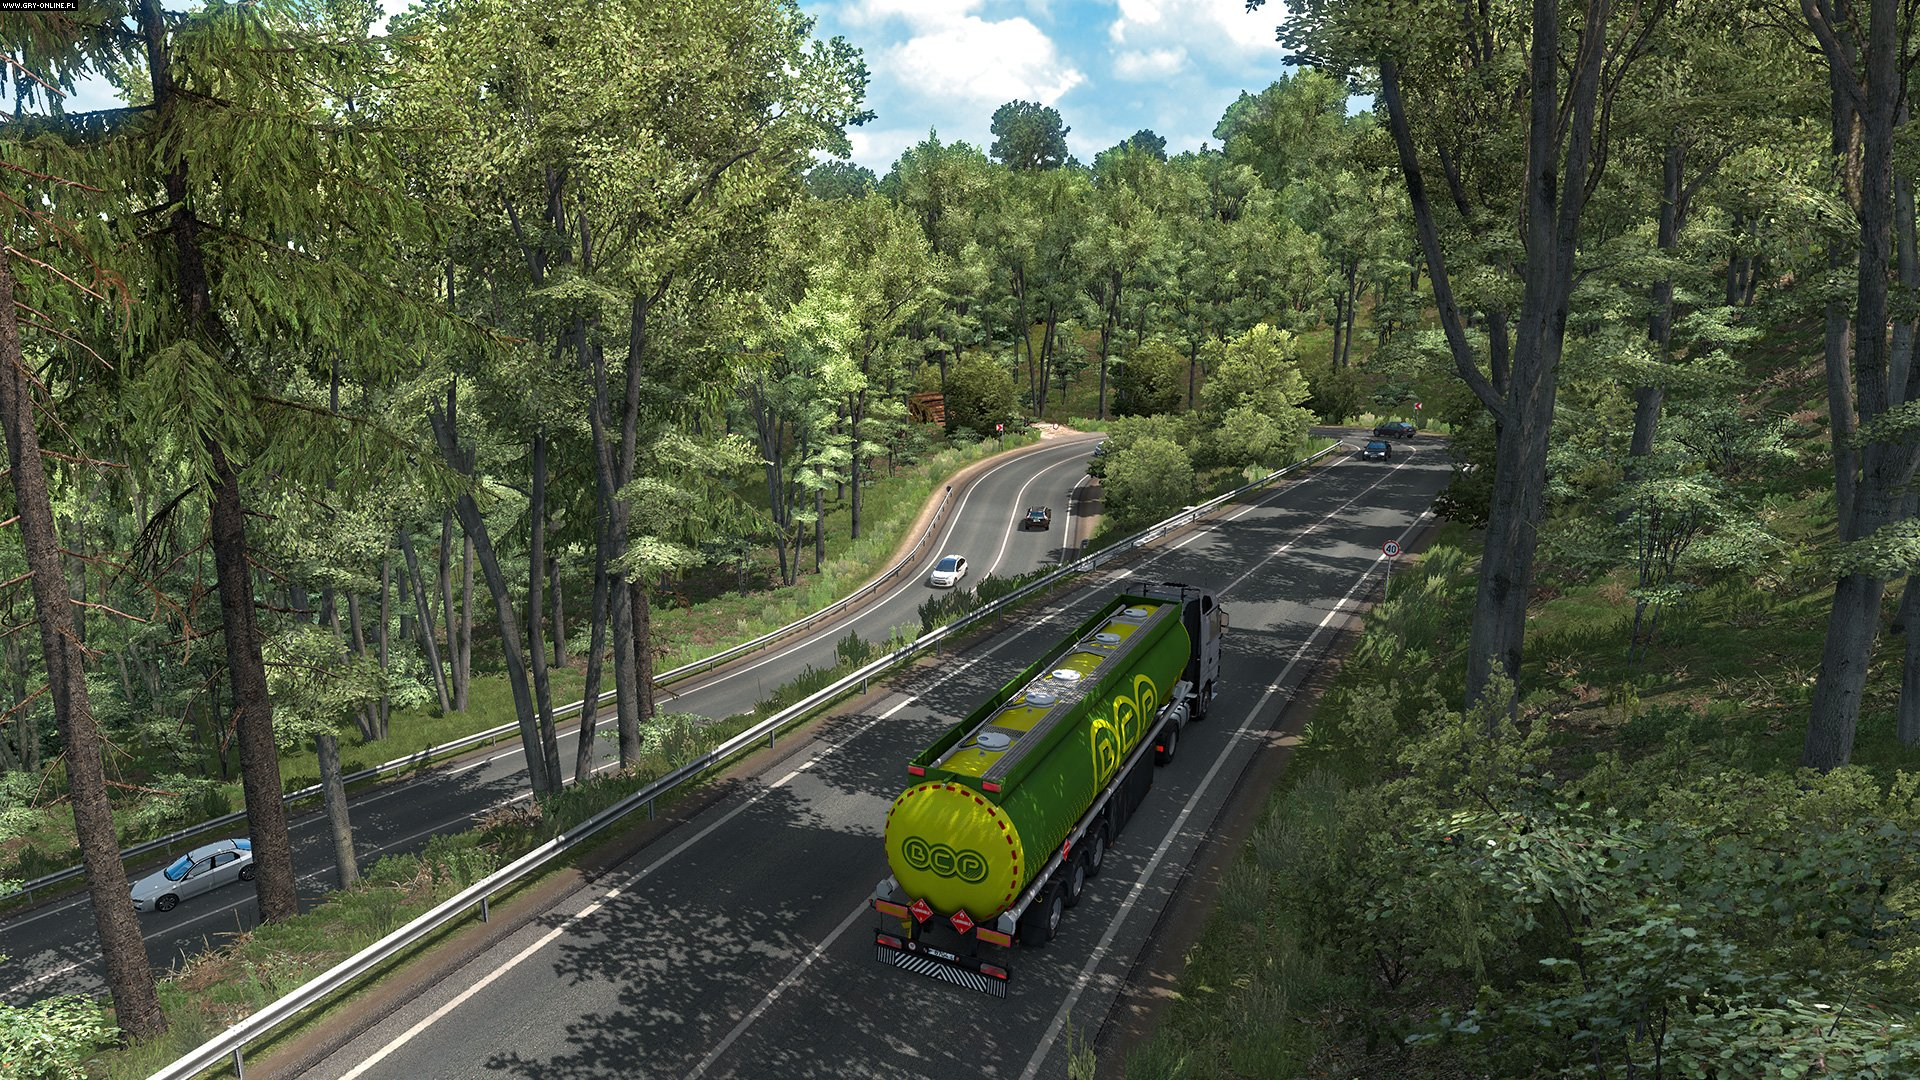 Euro Truck Simulator 2: Road to the Black Sea PC Games Image 2/15, SCS Software